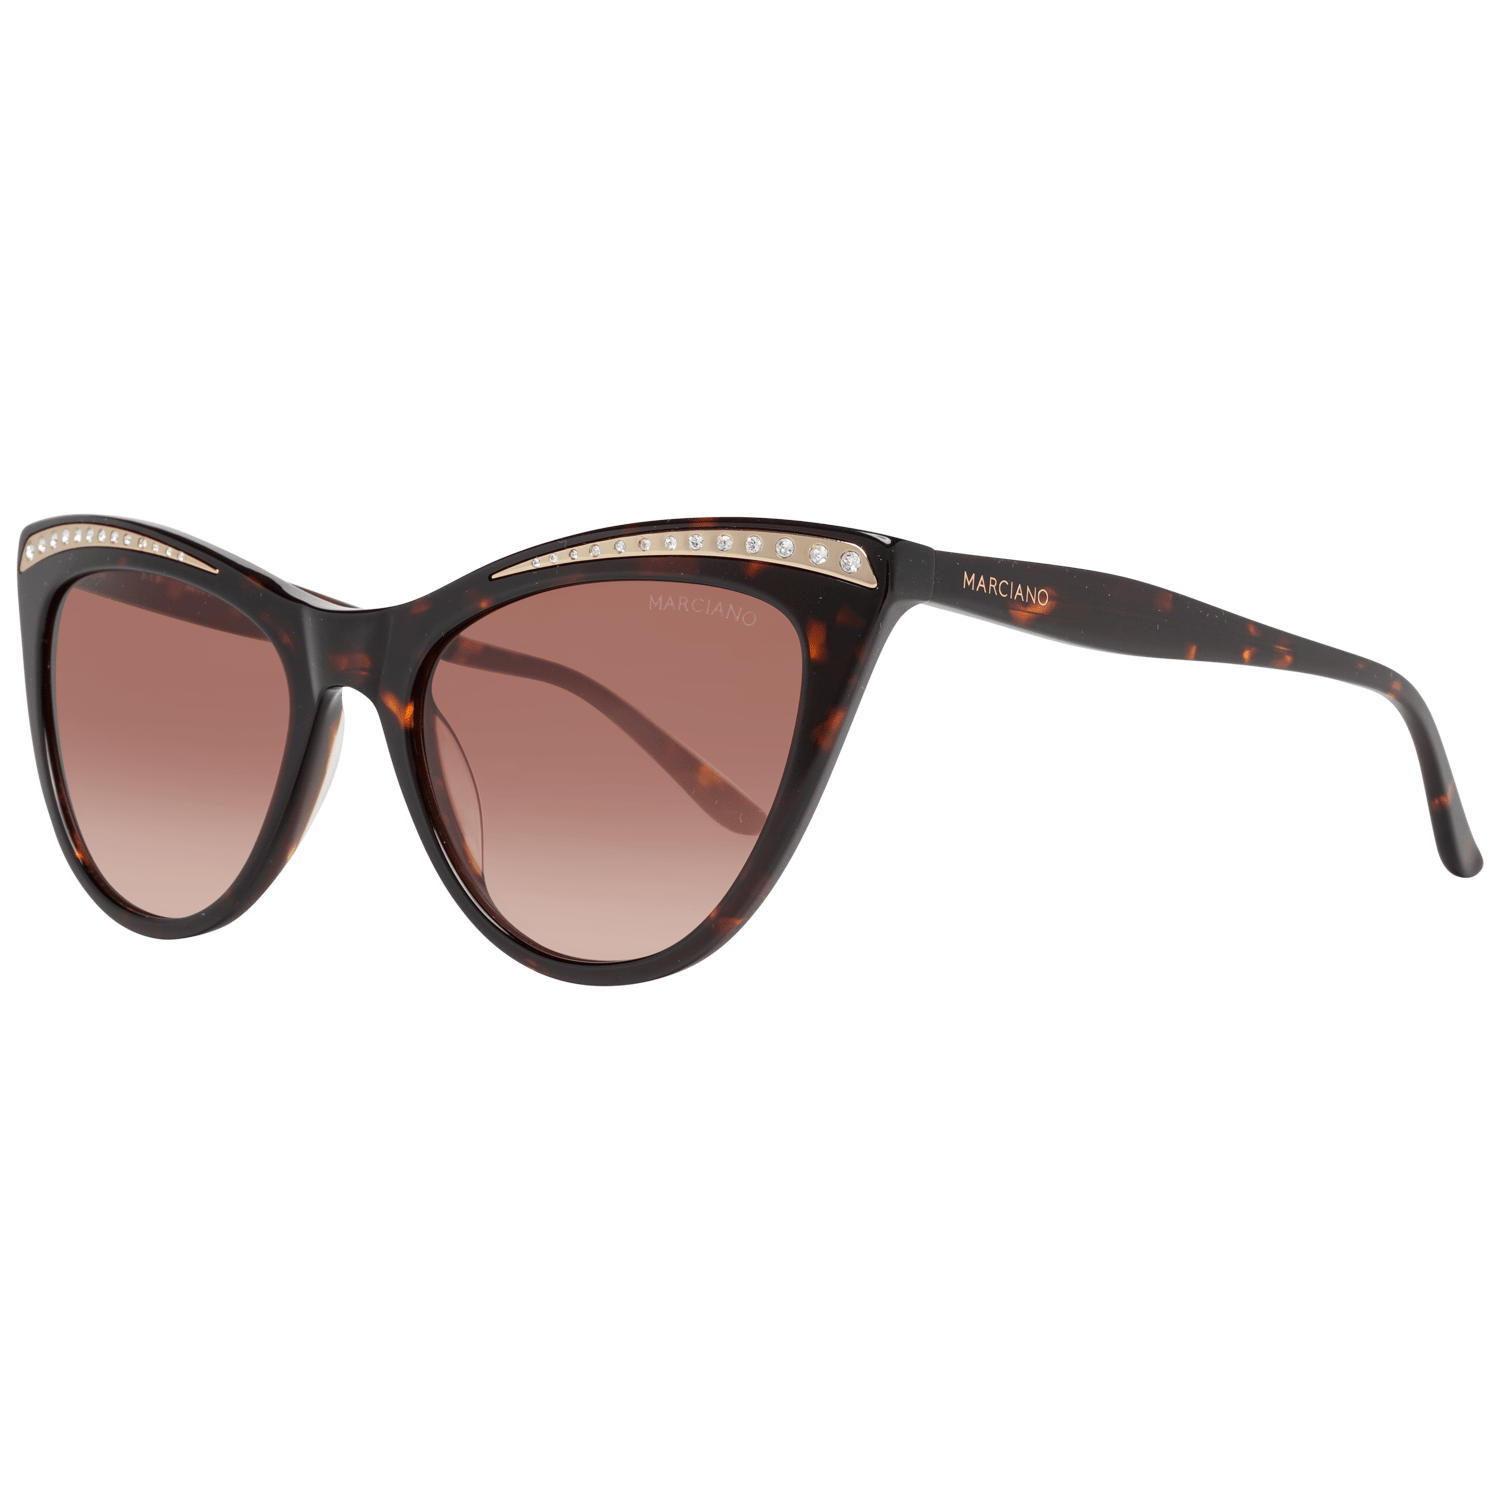 Guess By Marciano Women's Sunglasses Brown GM0793 5352F